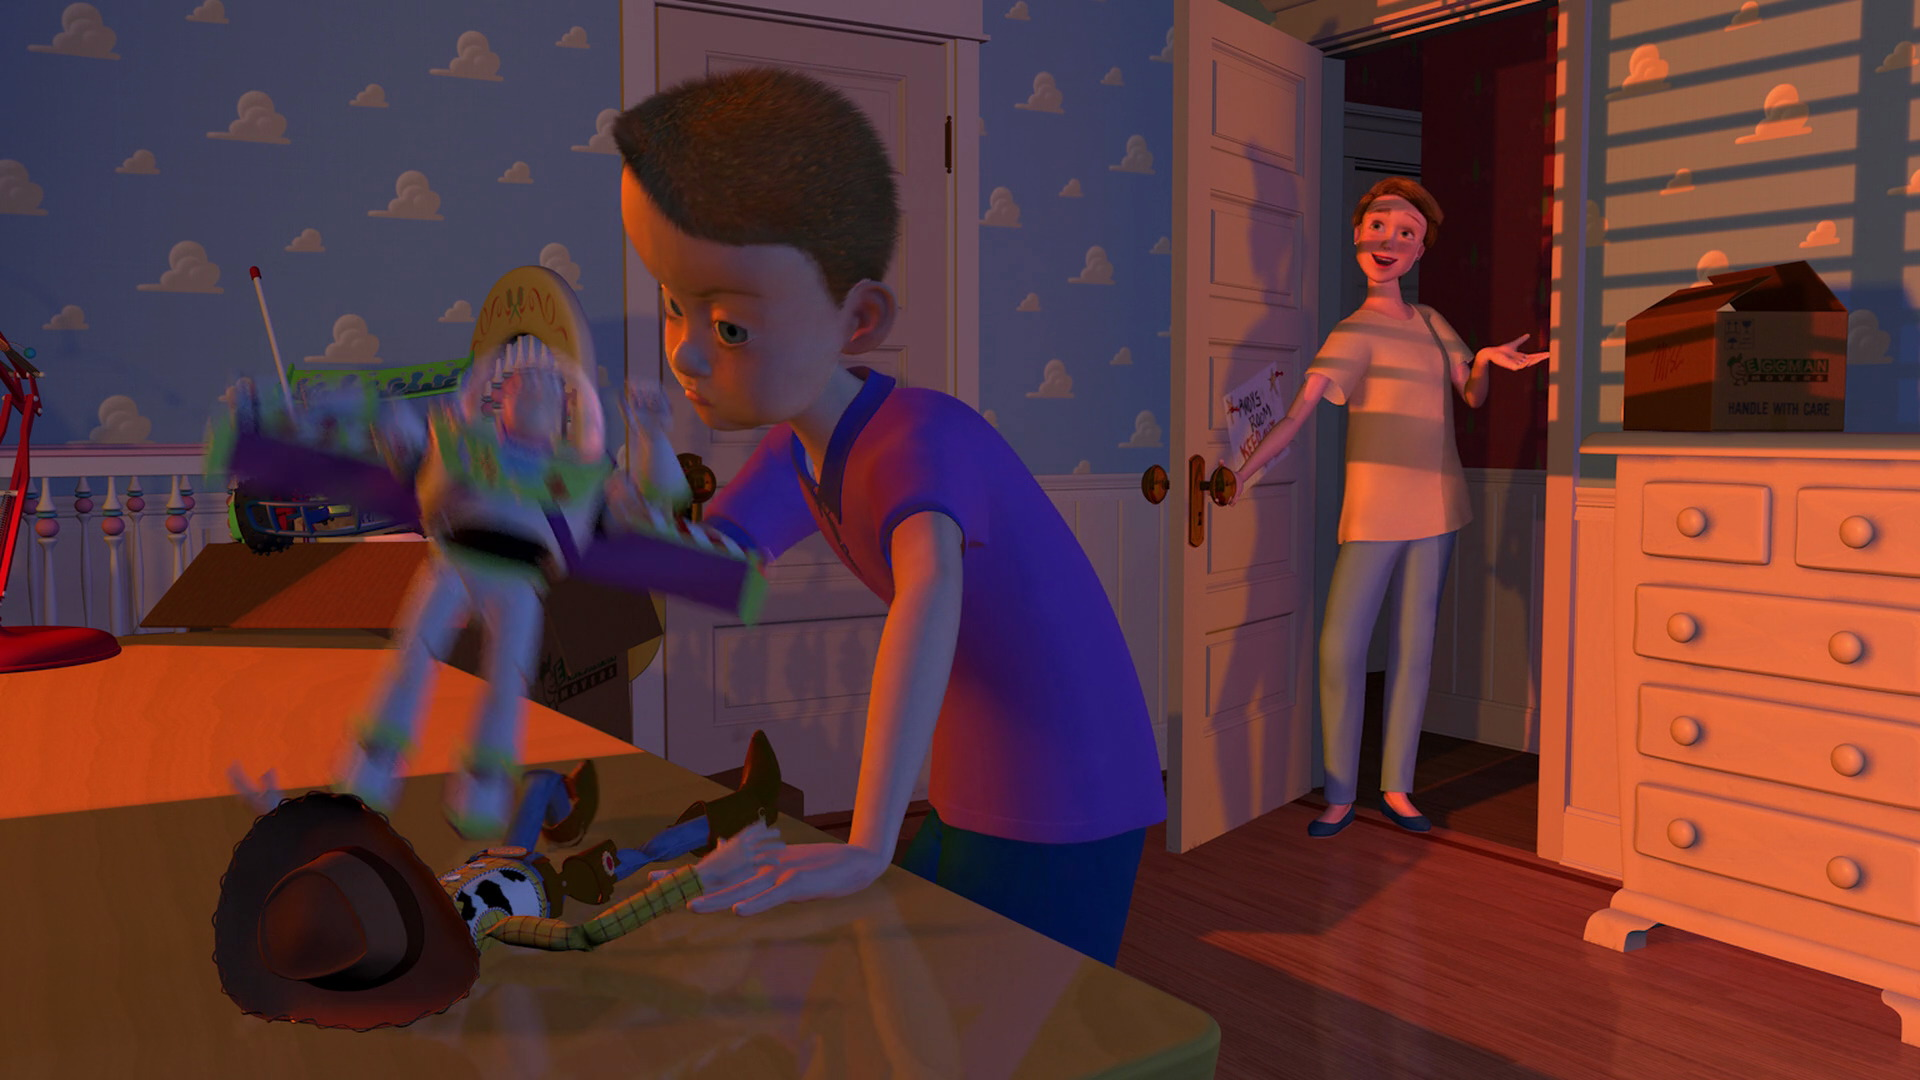 madame-davis-personnage-toy-story-01